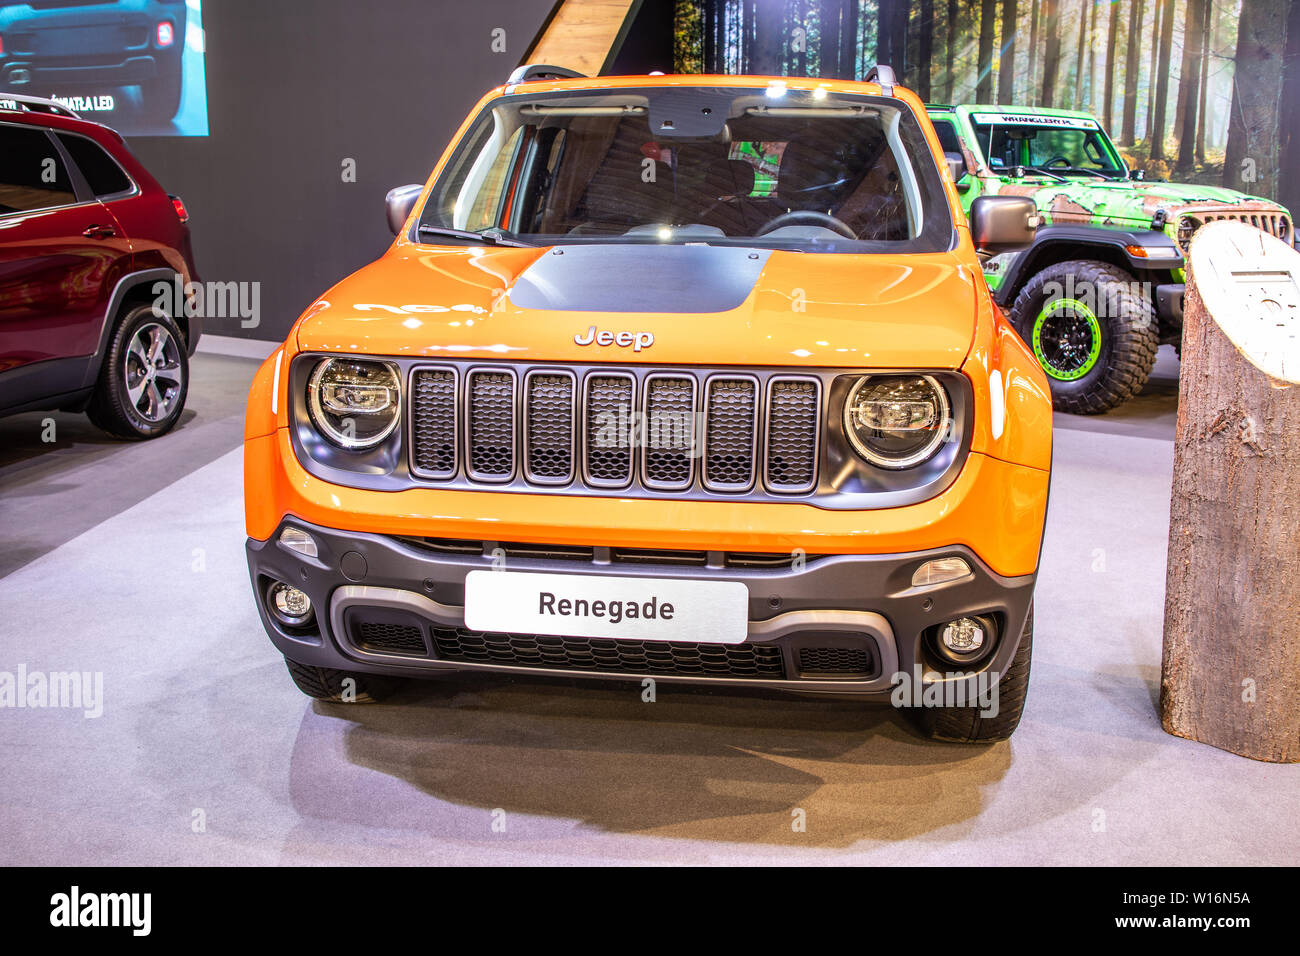 Poznan, Poland, March 2019: Jeep Renegade at Poznan International Motor Show, BU/520, Facelift, subcompact crossover SUV produced by Jeep Stock Photo